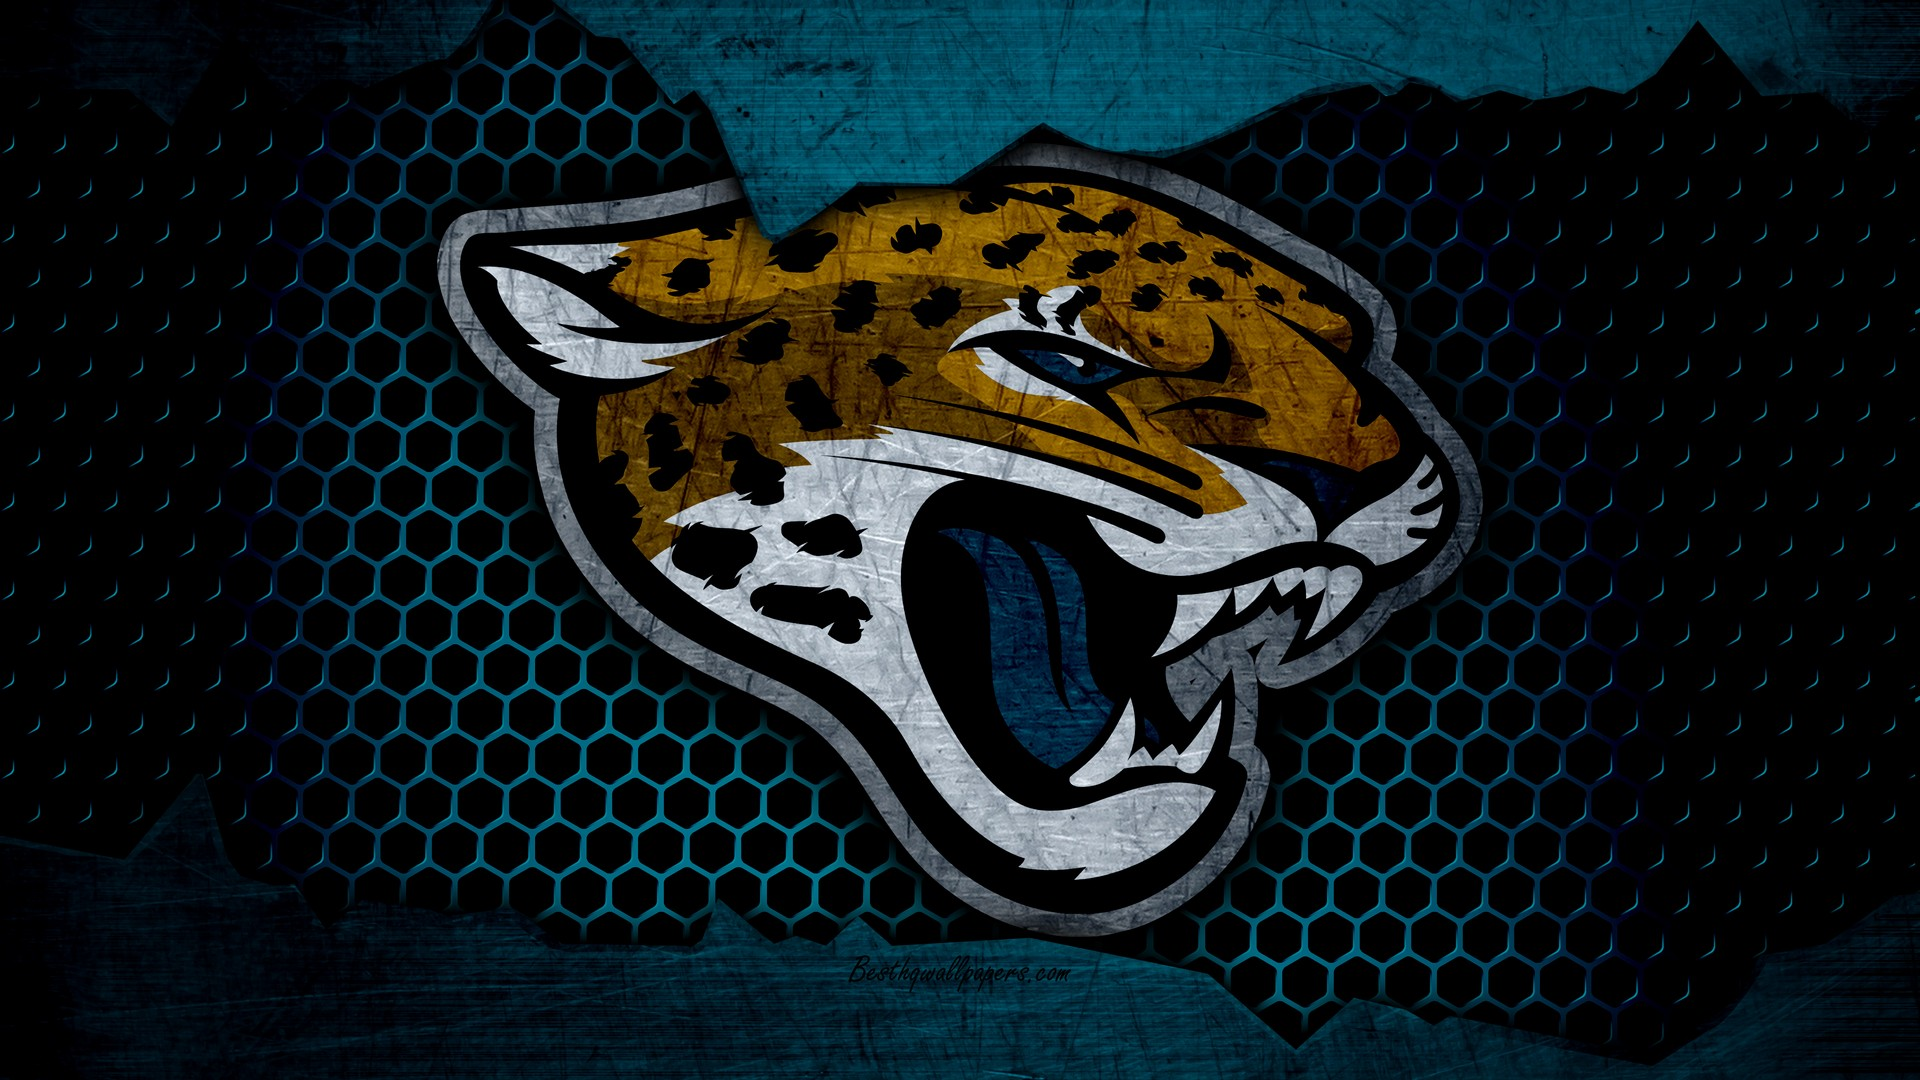 Jacksonville Jaguars Wallpaper HD 2019 NFL Football Wallpapers 1920x1080